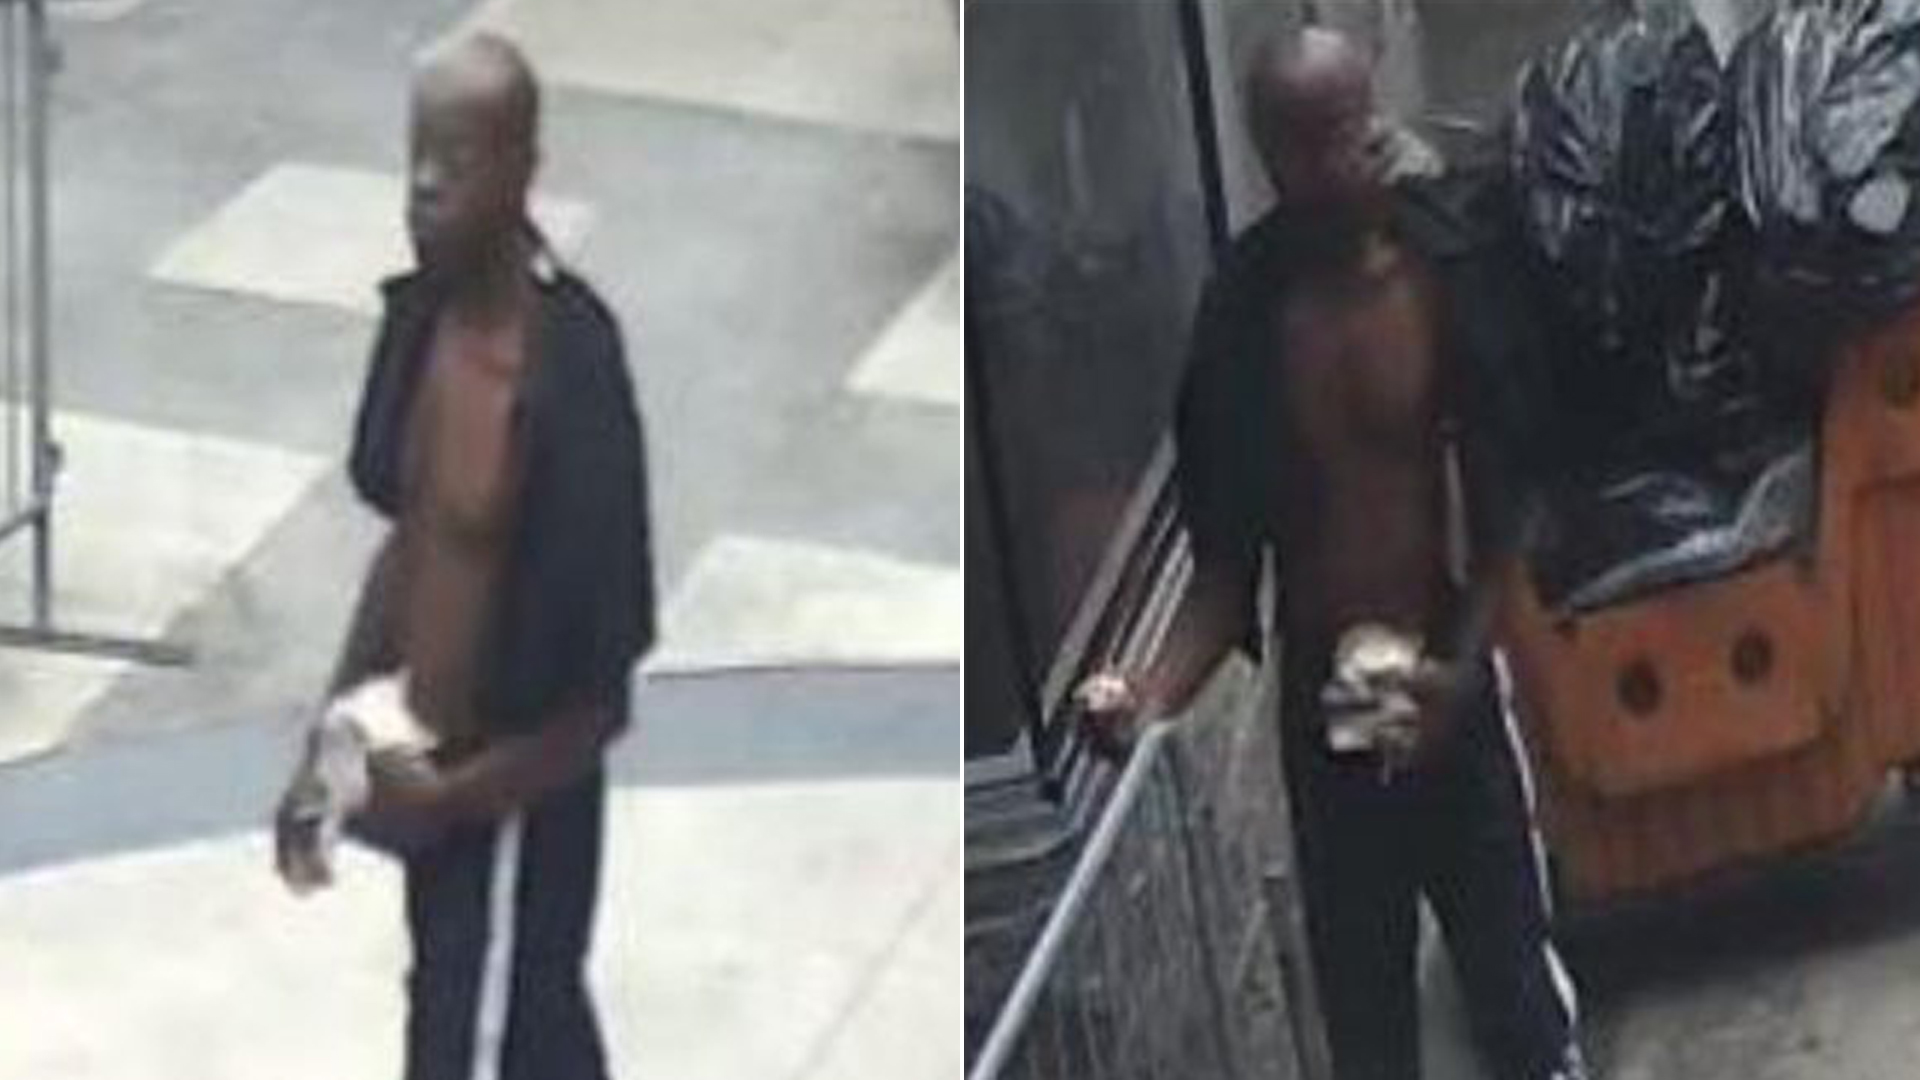 The suspect in the brutal beating of a 75-year-old man in downtown Los Angeles is seen in surveillance images released by L.A. police on June 19, 2019.